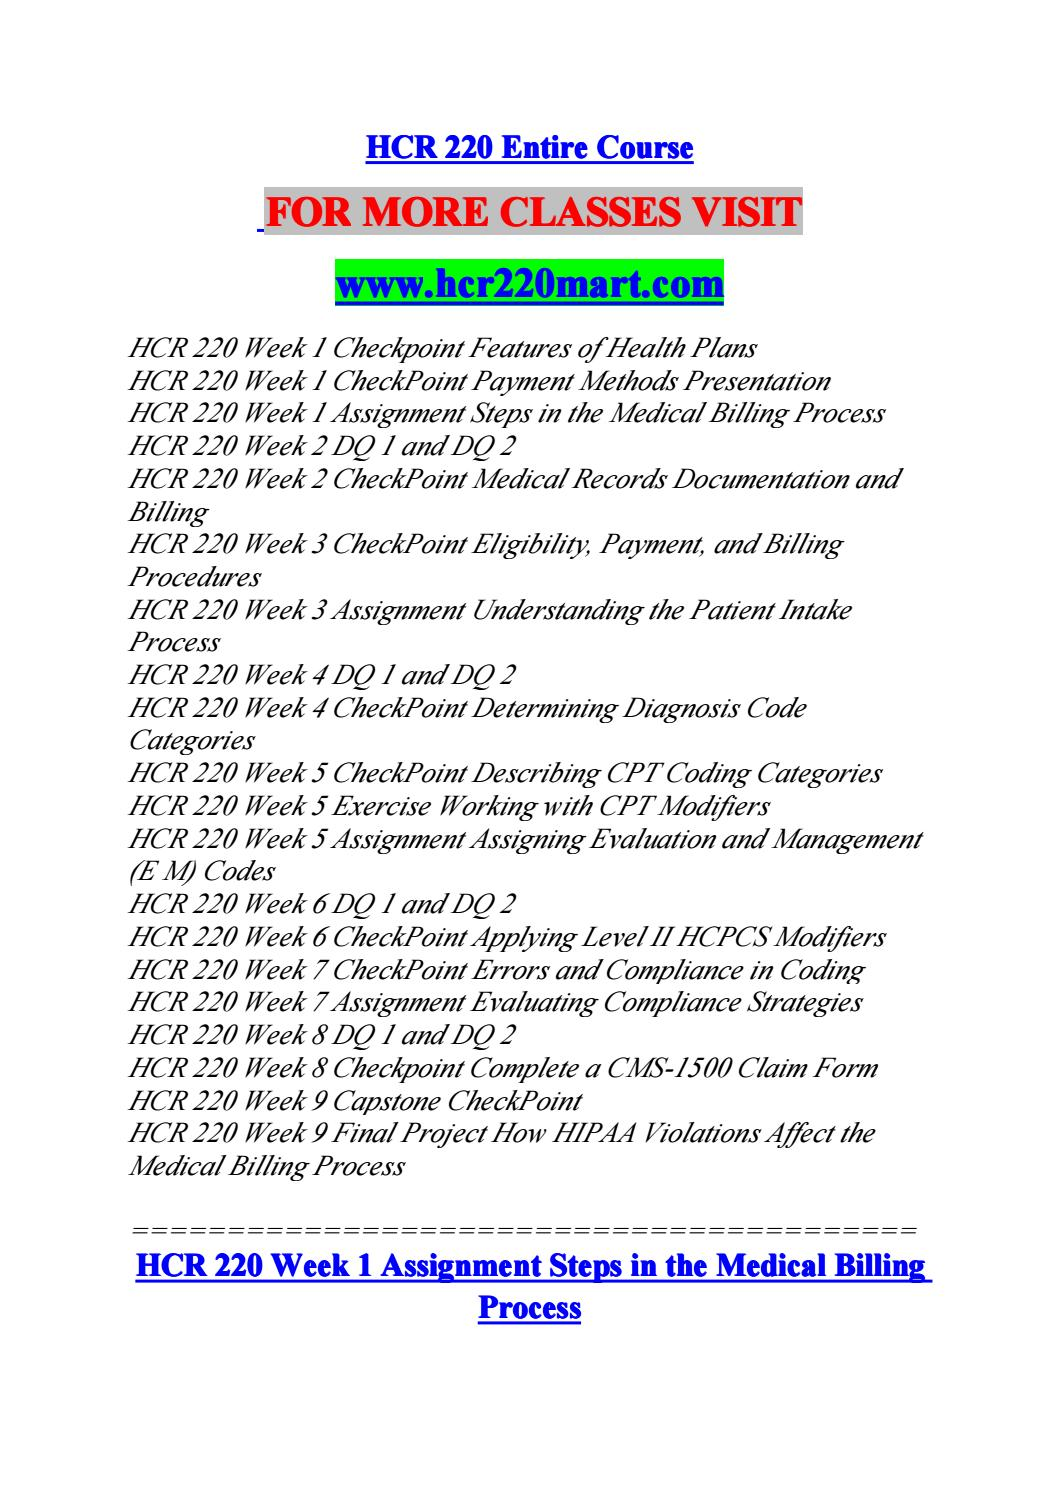 hcr220 week one checkpoint features of Hcr 220 week 1 assignment steps in the medical billing process 3 0 4 years ago hcr 220 week 1 checkpoint features of health plans 8 0 4 years ago.